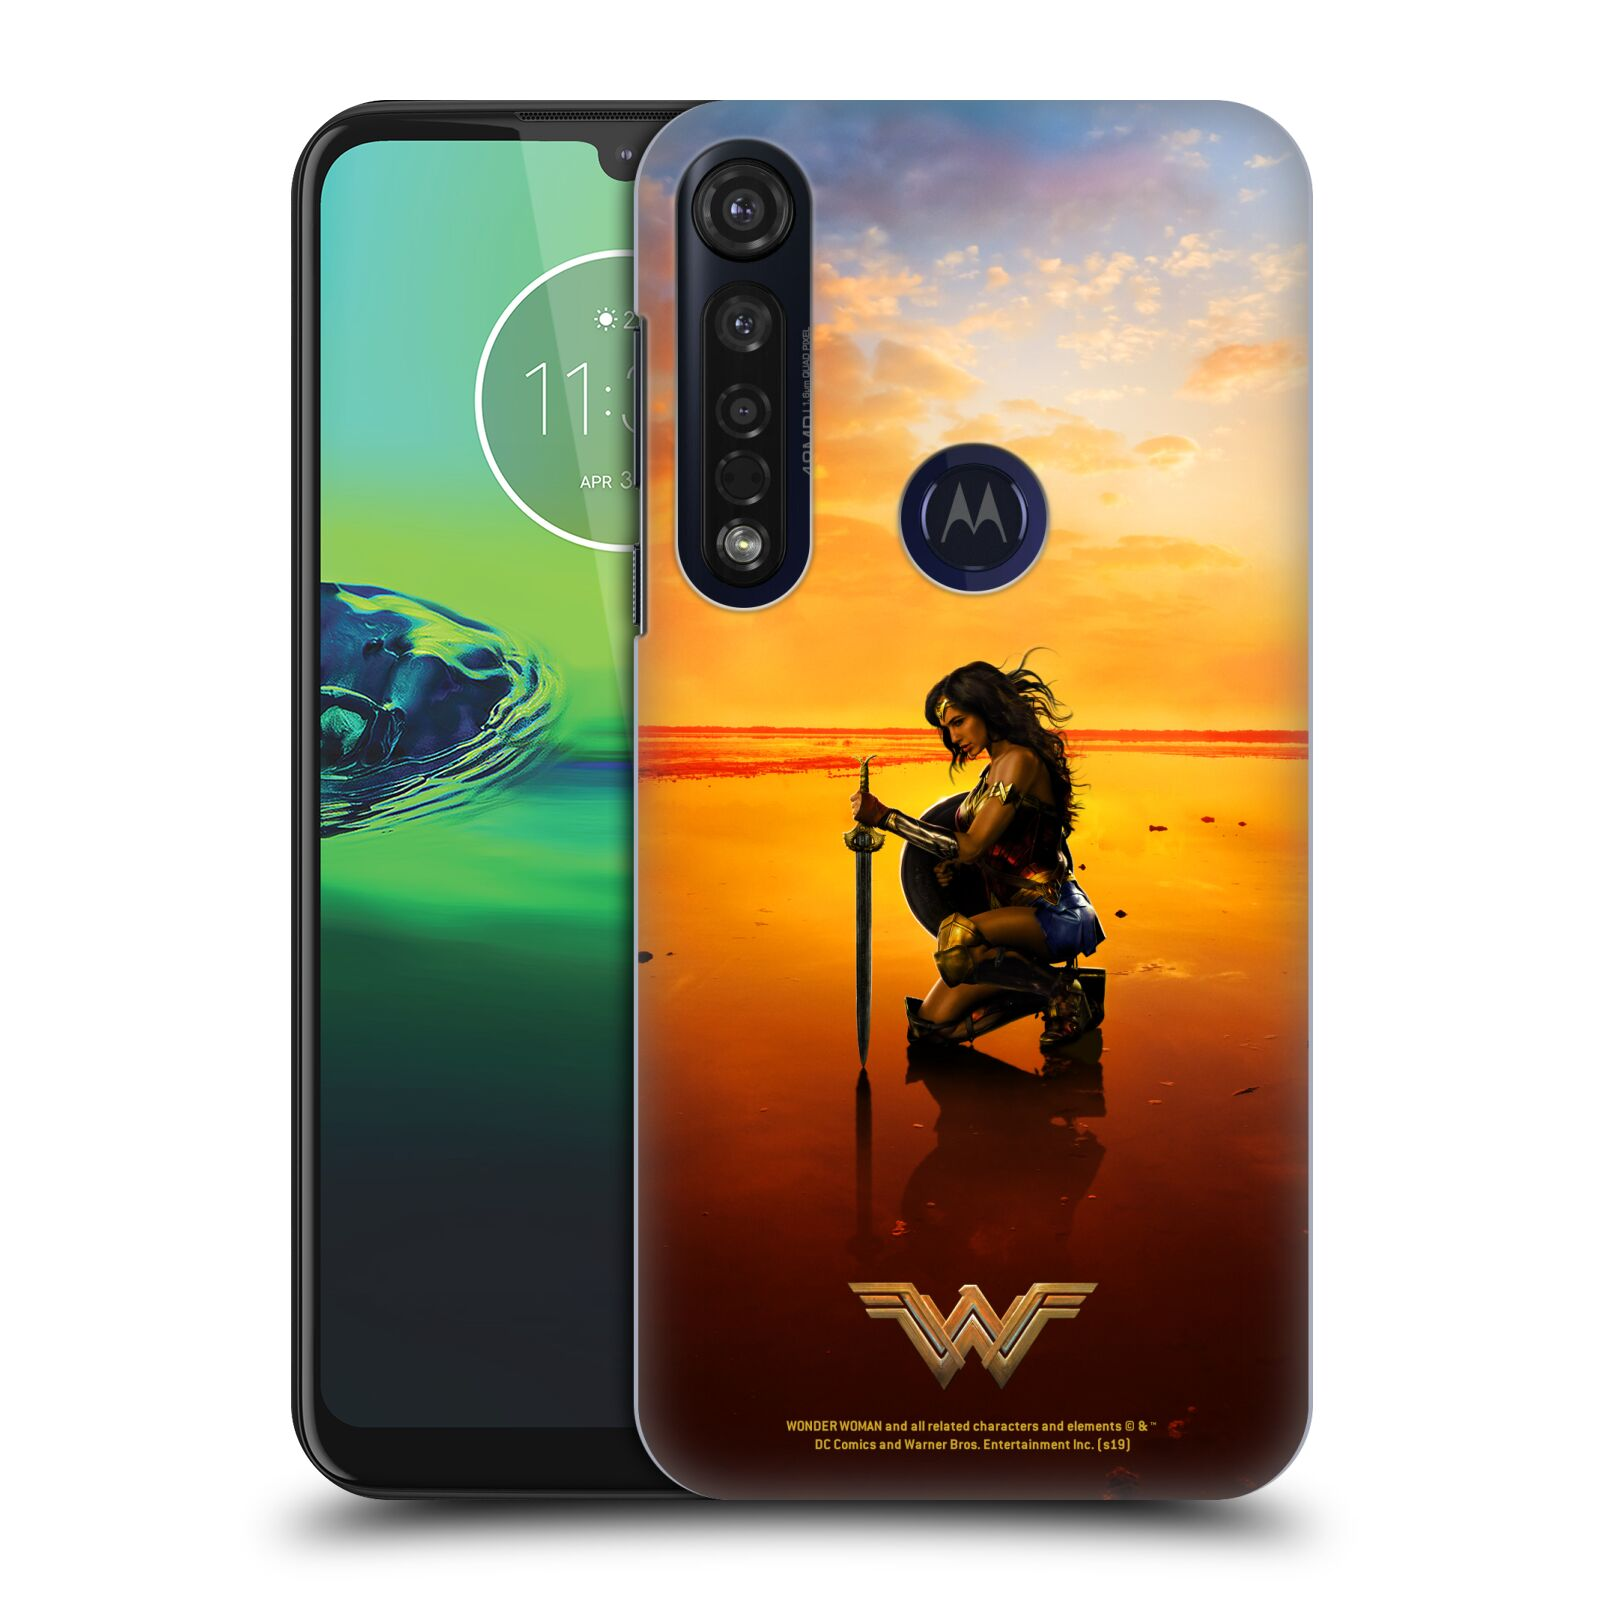 Official Wonder Woman Movie Posters Sword And Shield Case for Motorola Moto G8 Plus